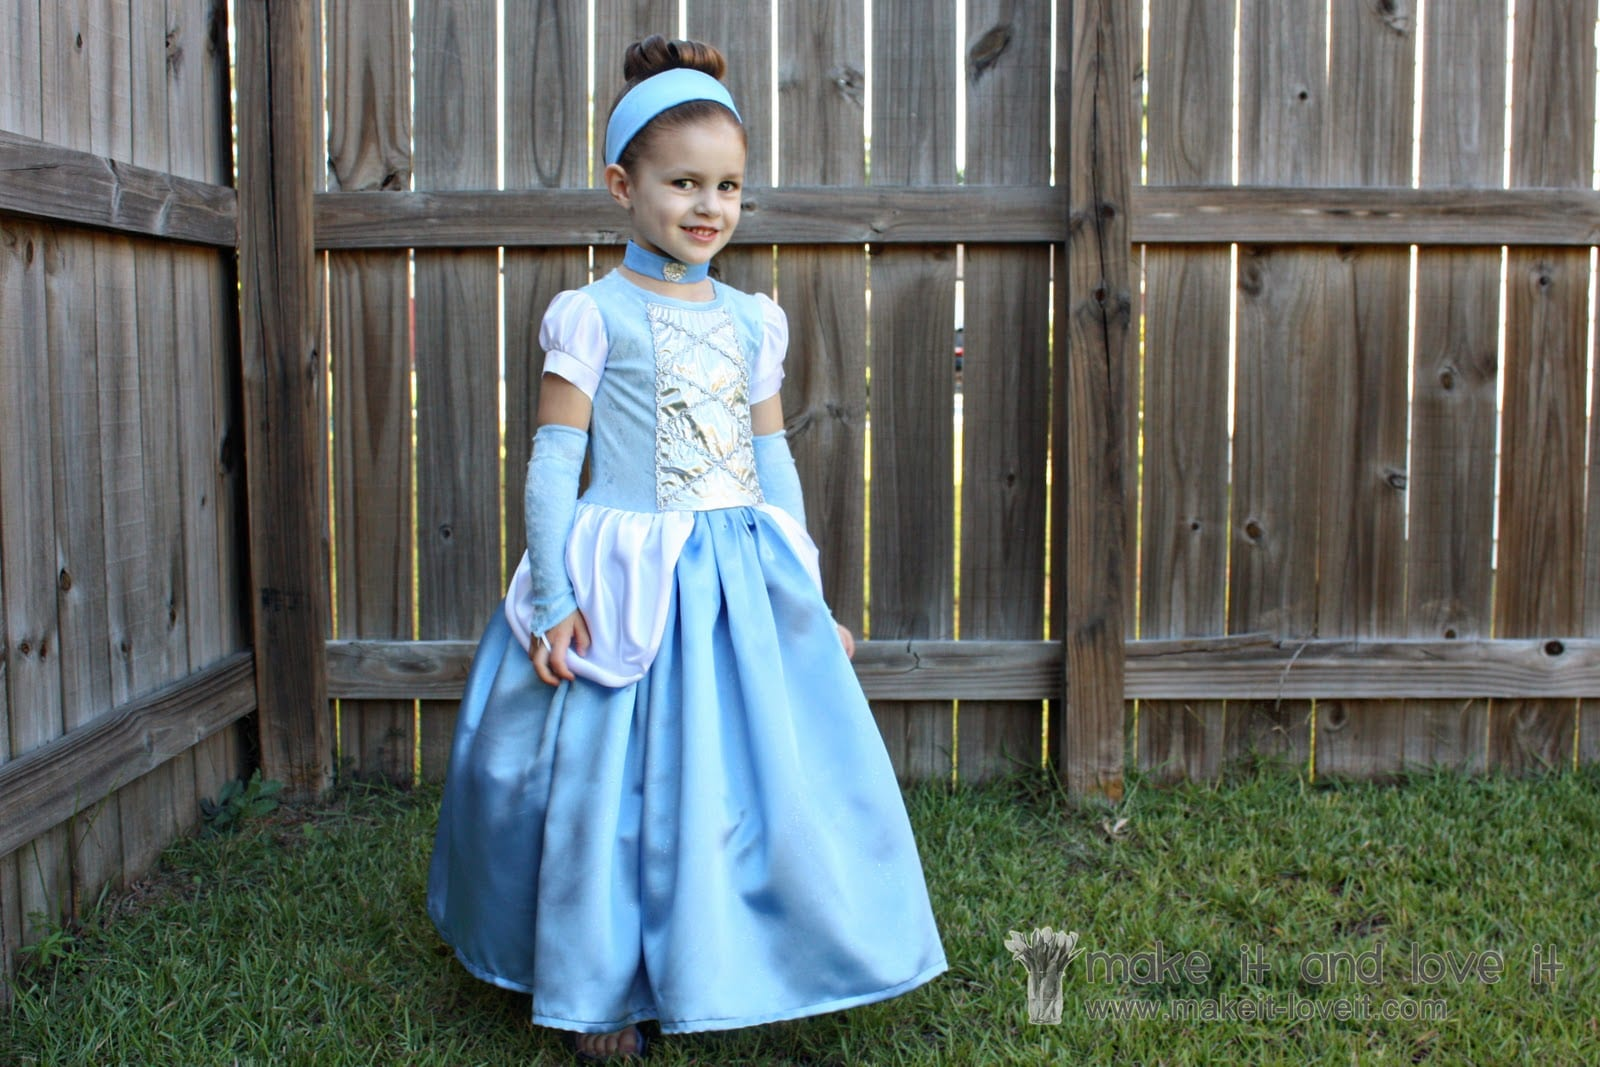 Cinderella Dress - Halloween Costume | Make It and Love It